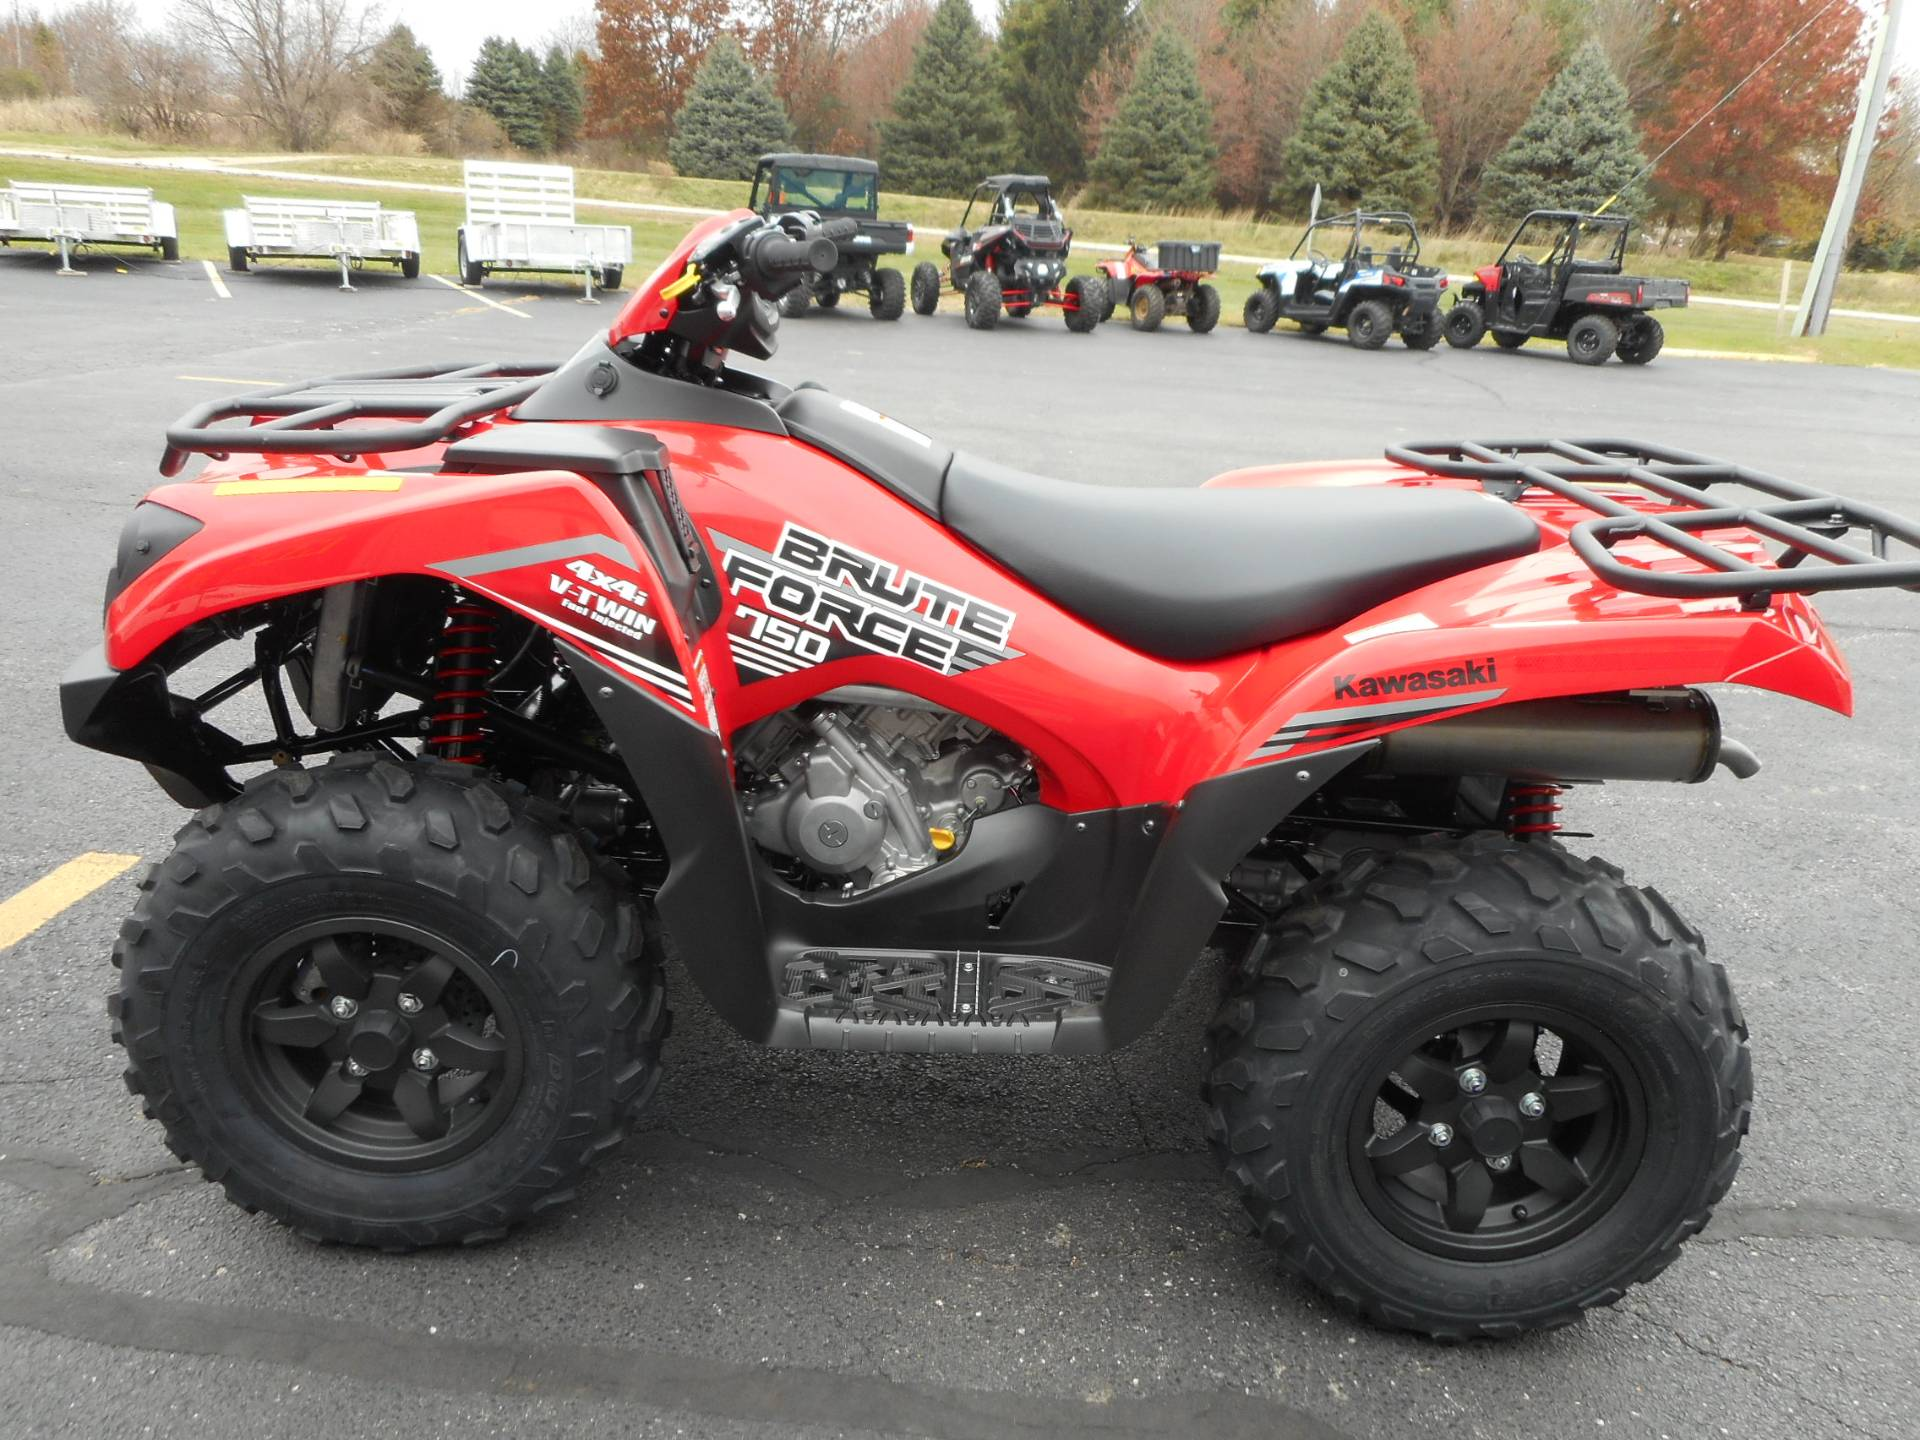 2020 Kawasaki Brute Force 750 4x4i in Belvidere, Illinois - Photo 2